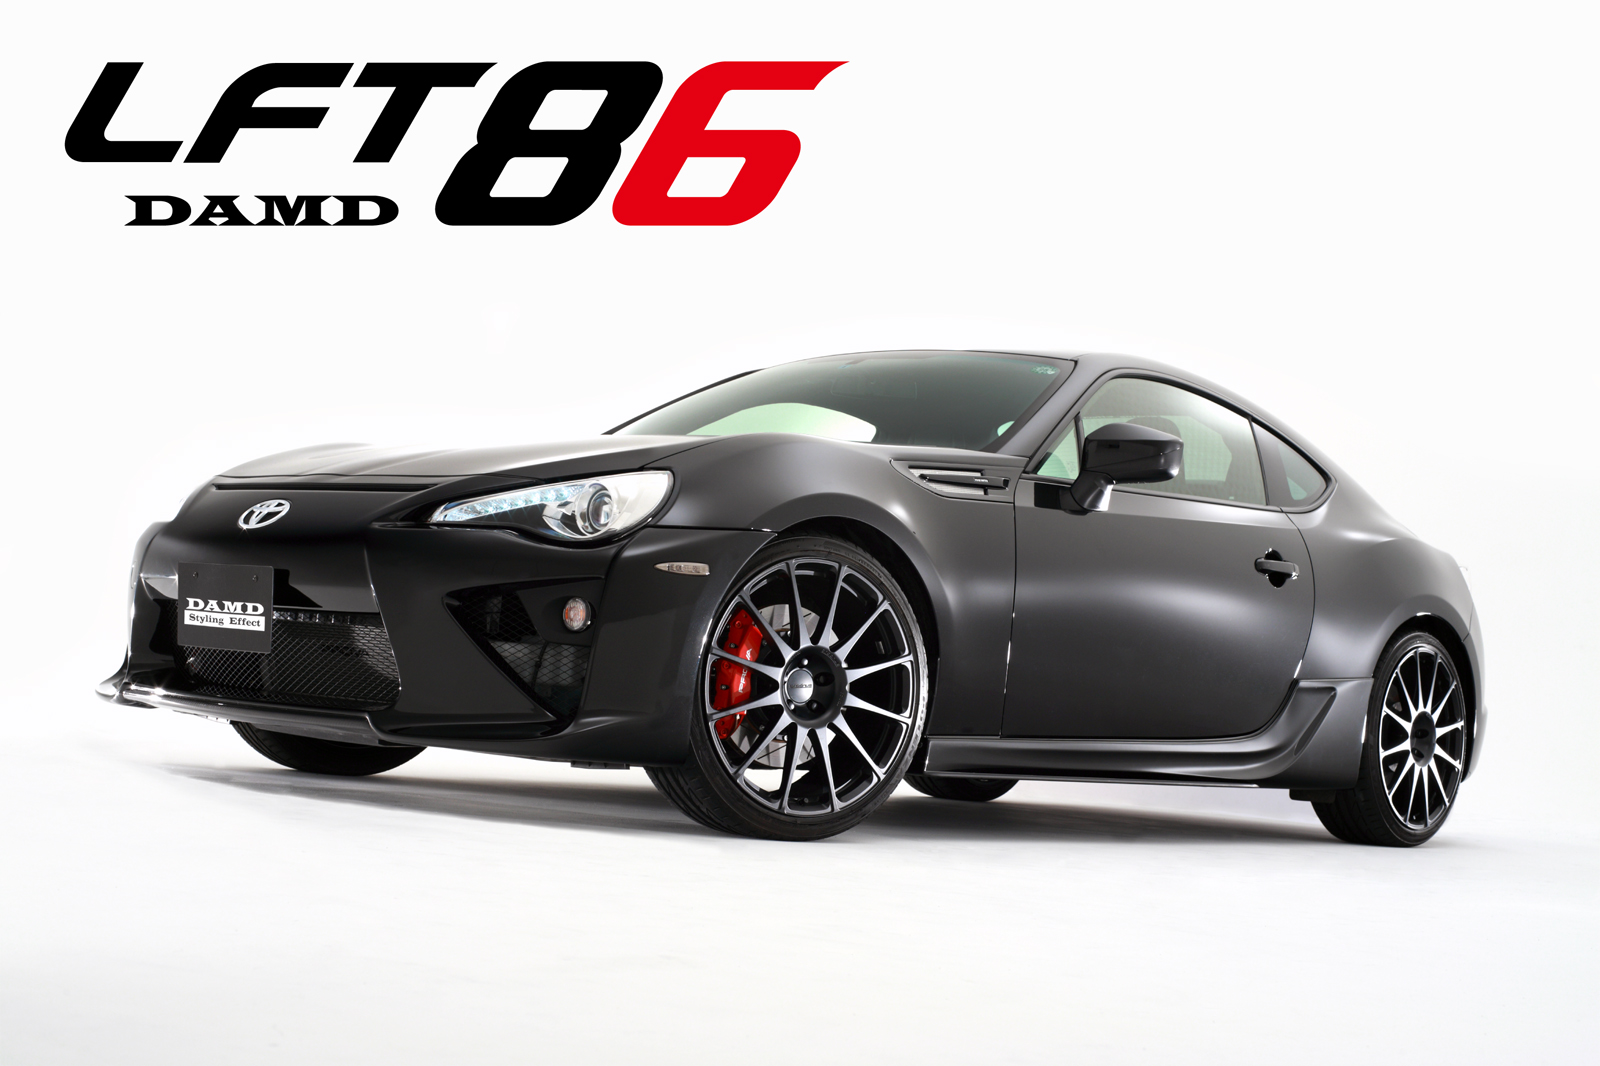 http://s1.cdn.autoevolution.com/images/news/gallery/toyota-gt-86-gets-lexus-lfa-body-kit-from-damd-photo-gallery_1.jpg